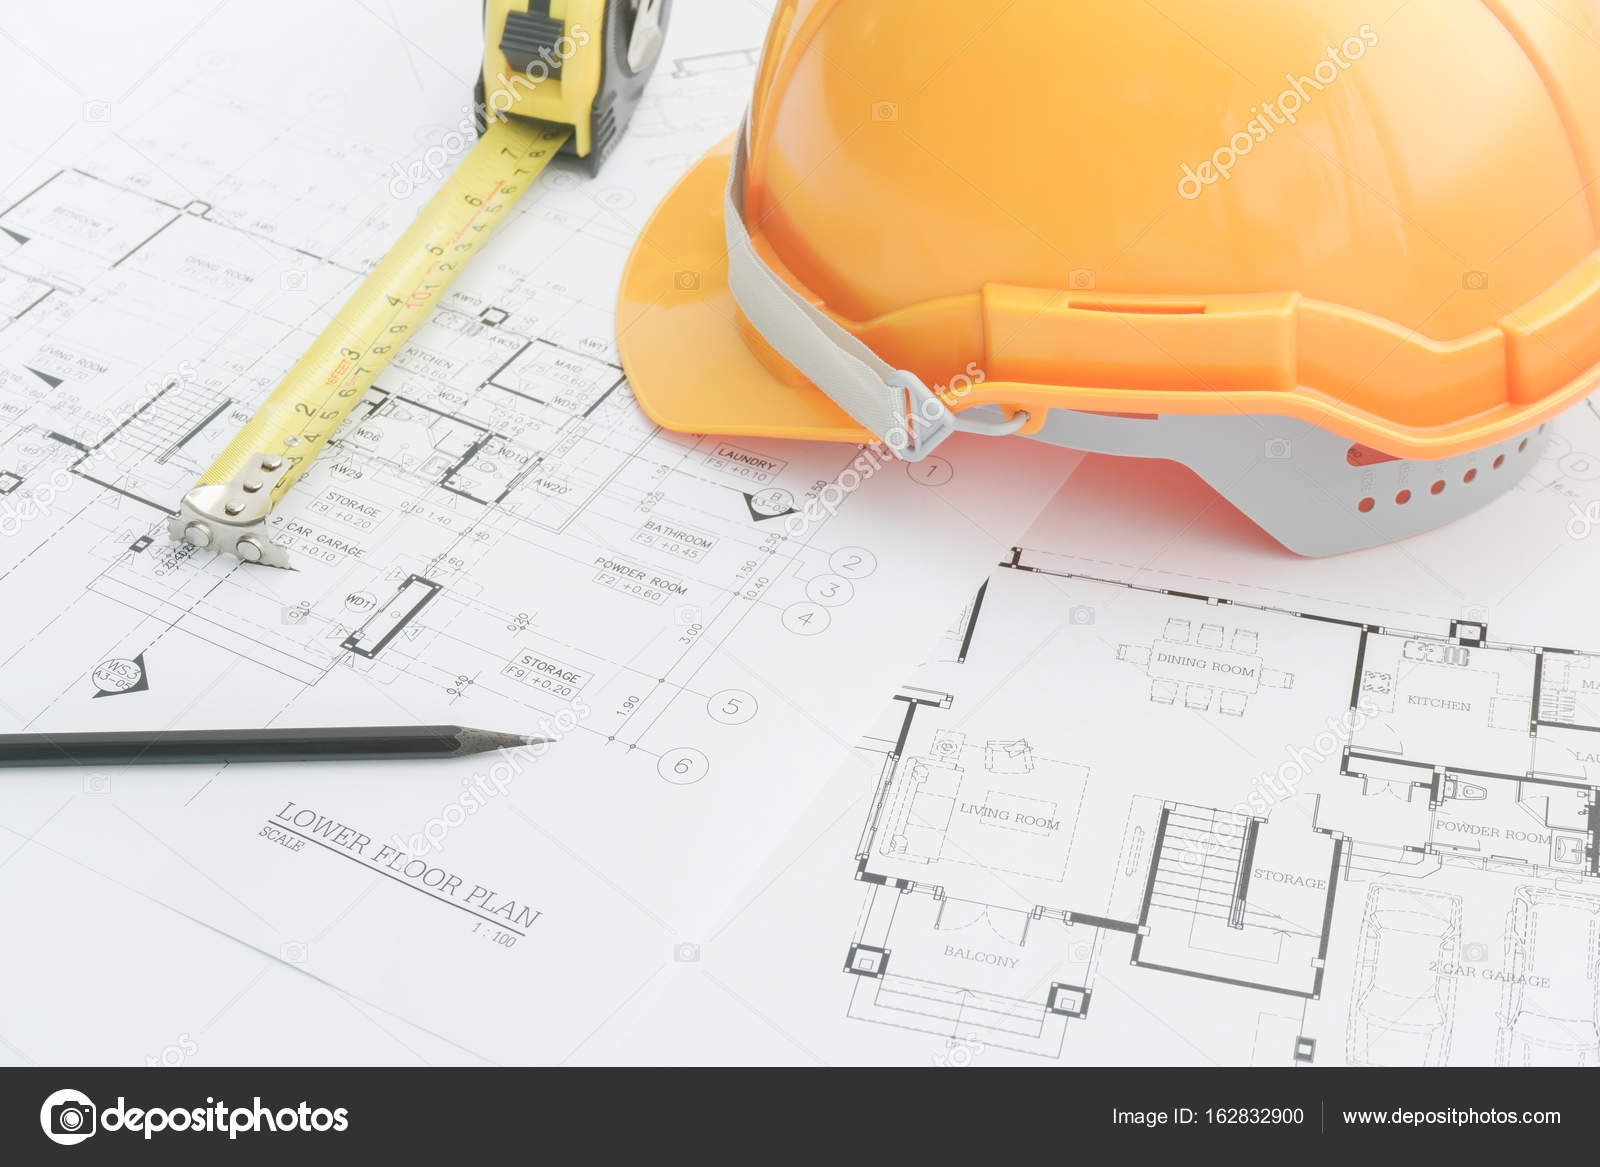 Architects Workplace Architectural Tools Blueprints Helmet Measuring Tape Diagram Construction Concept Engineering Photo By Worldwide Stock